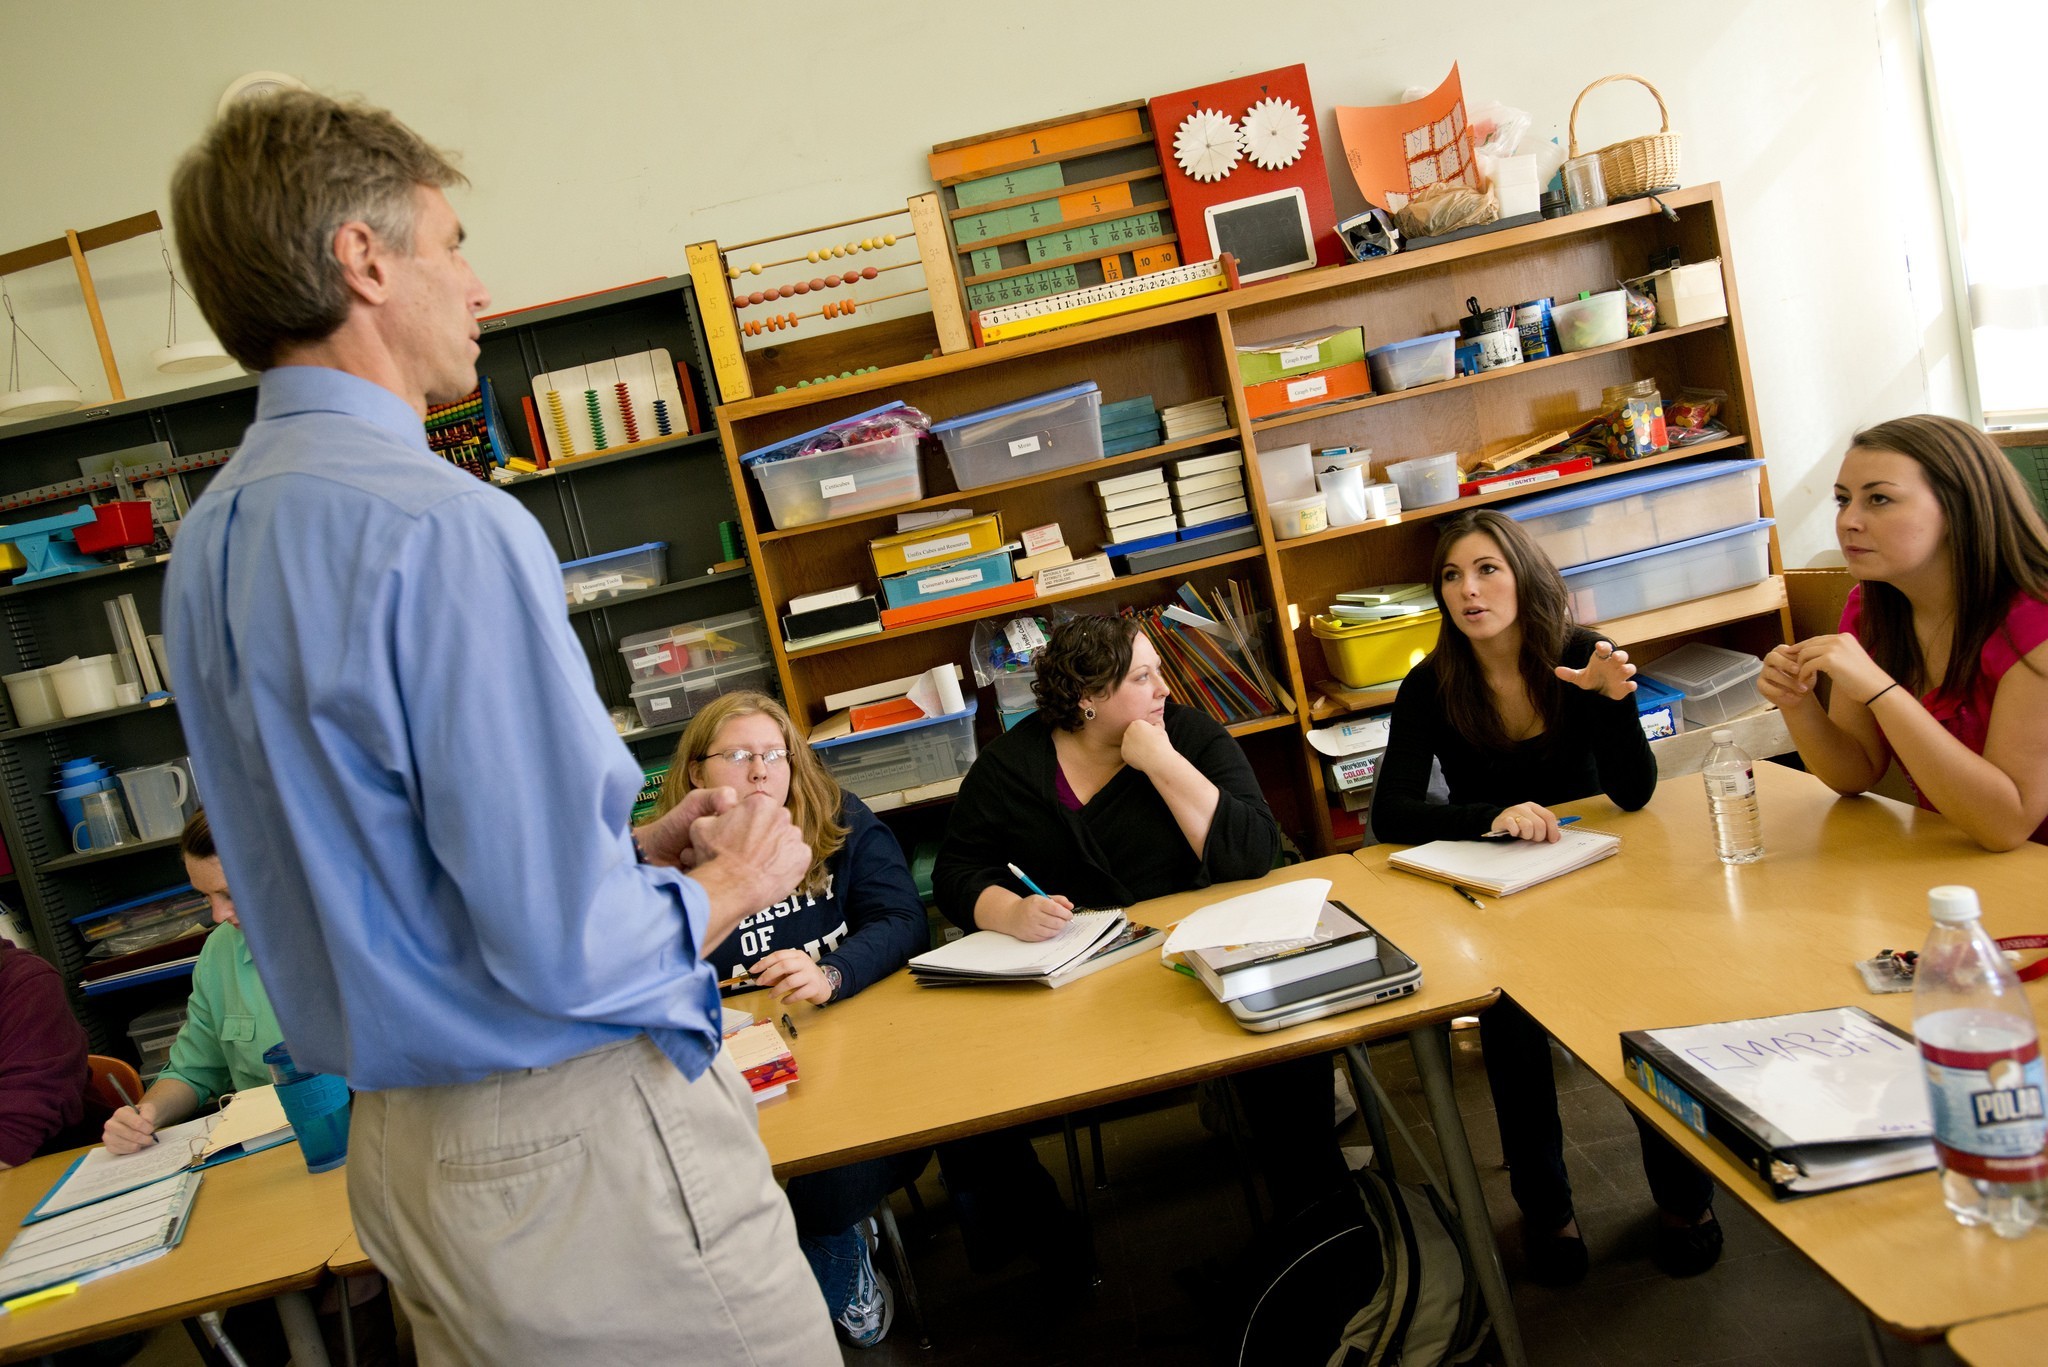 Professor leading a class at UMaine